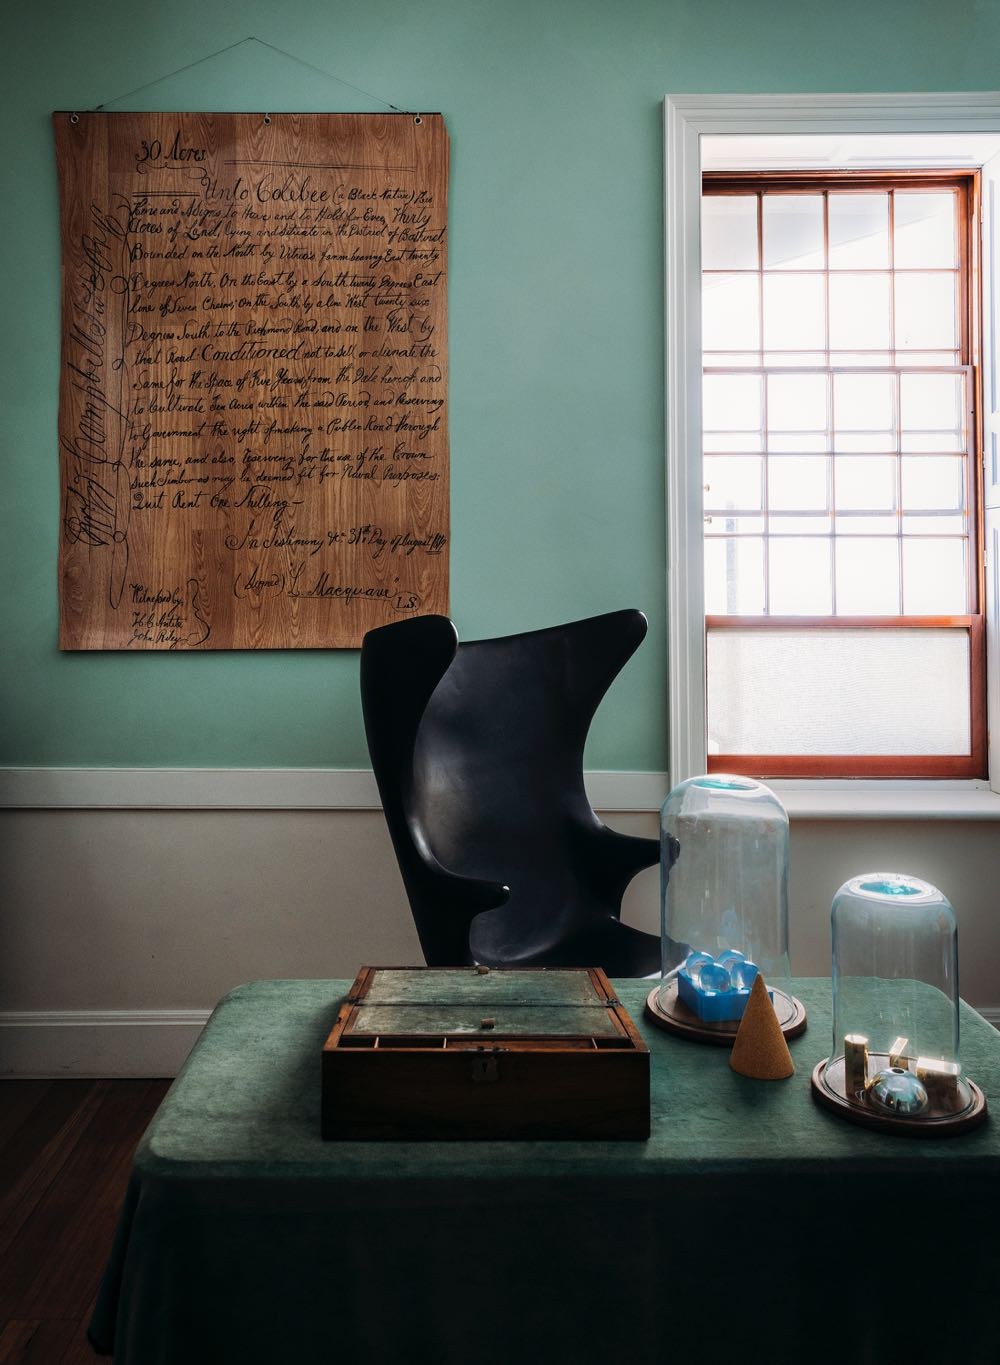 The 'Carbon Wingback' chair by Sarah King (made by Ben Blakebrough) in Governor Macquarie's study. The wall art is a replica of a document from 1819 recording the first land grant by Governor Macquarie to an Aboriginal  The artwork is handwritten in laundry marker on floorboard style linoleum by Joan Ross (2006). Objects under the cloche are by Daniel Emma.